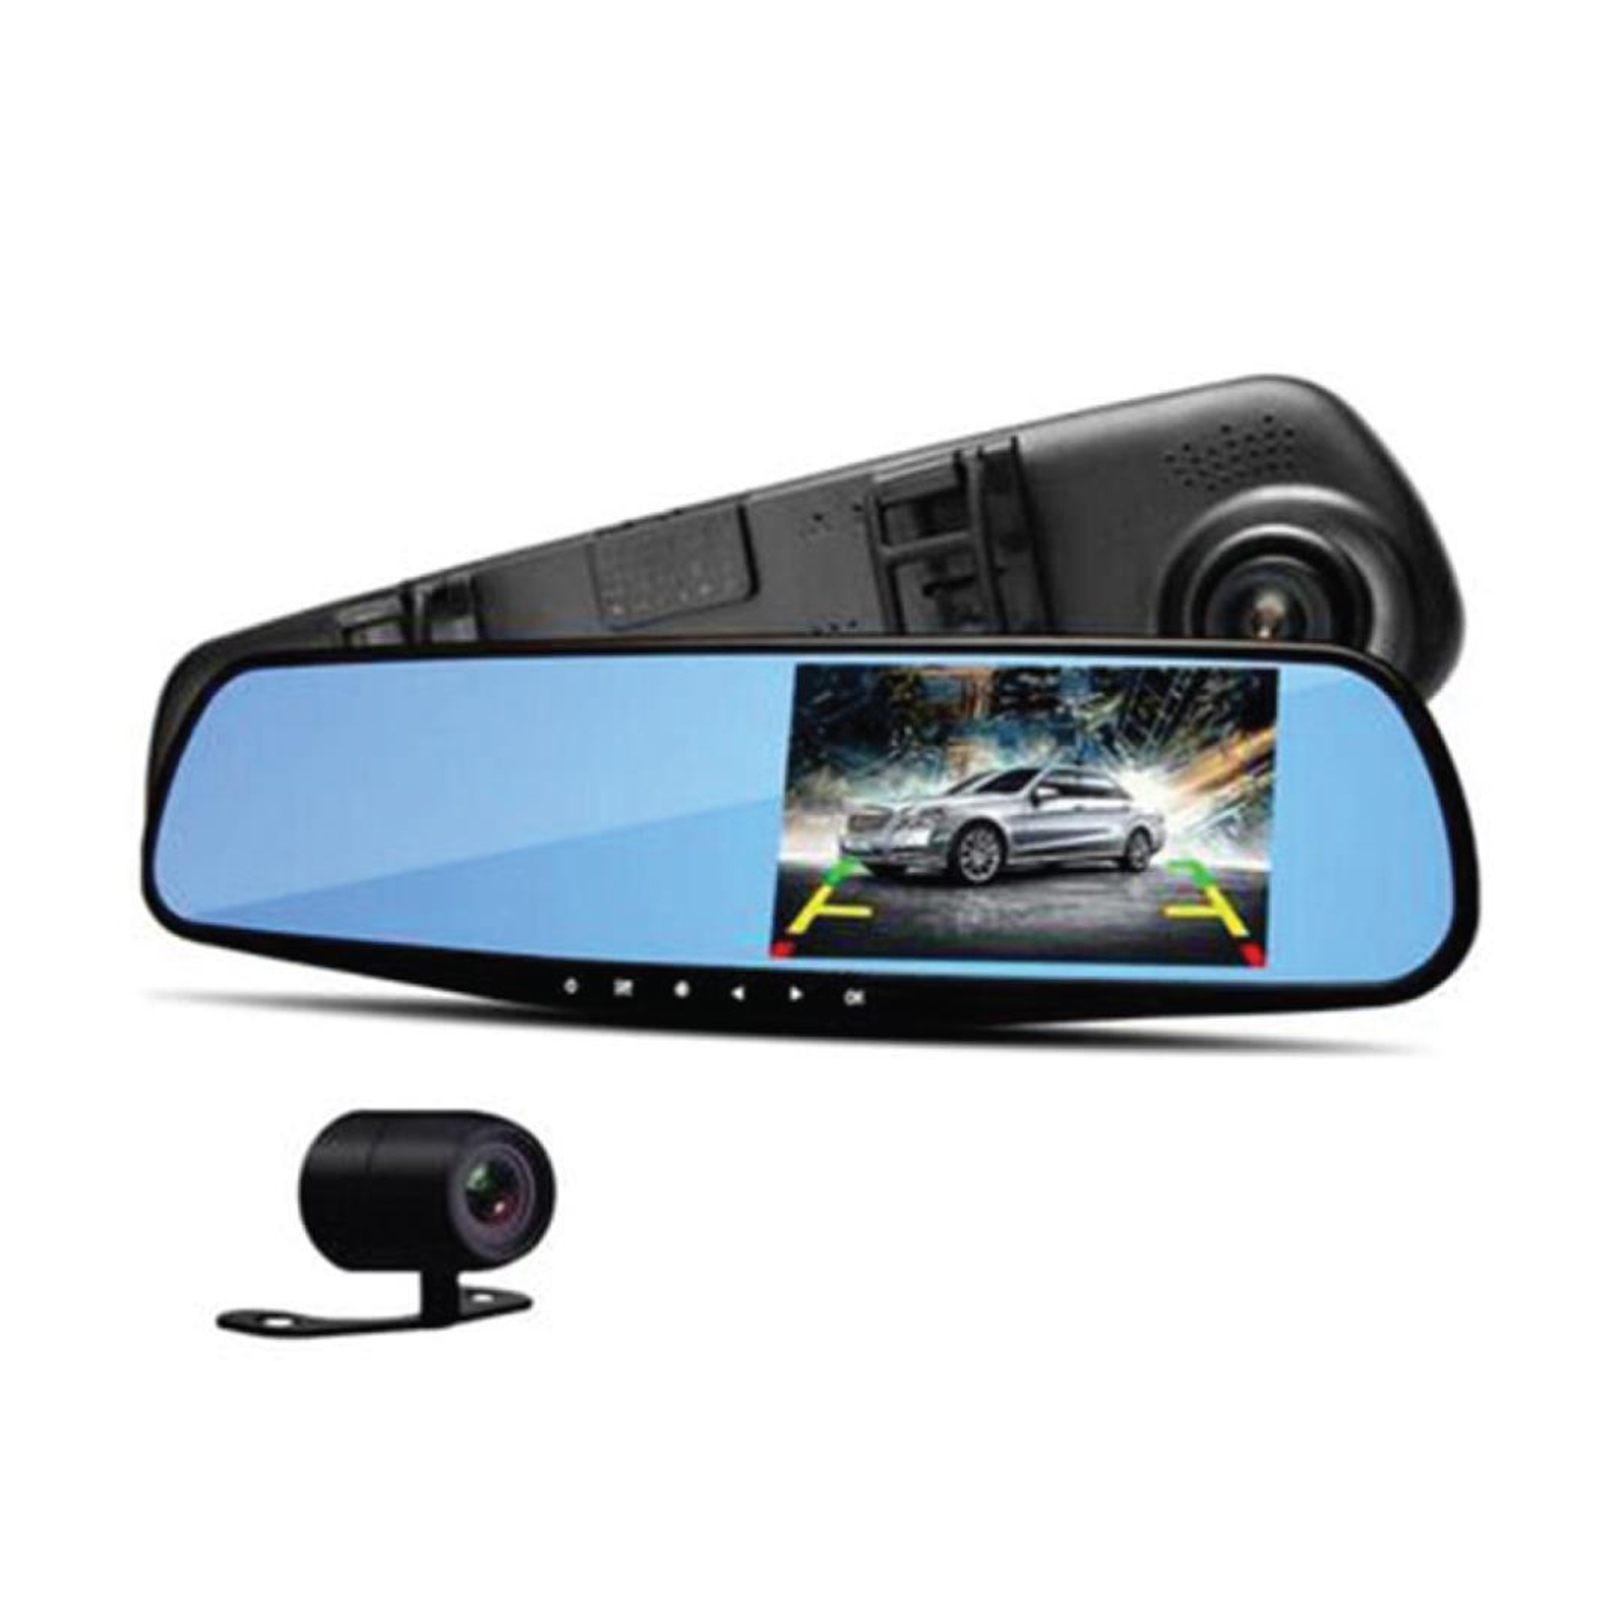 Pyle DVR Rearview Mirror Dash Cam Kit - Dual Camera Vehicle Video Recording System with Full HD 1080p